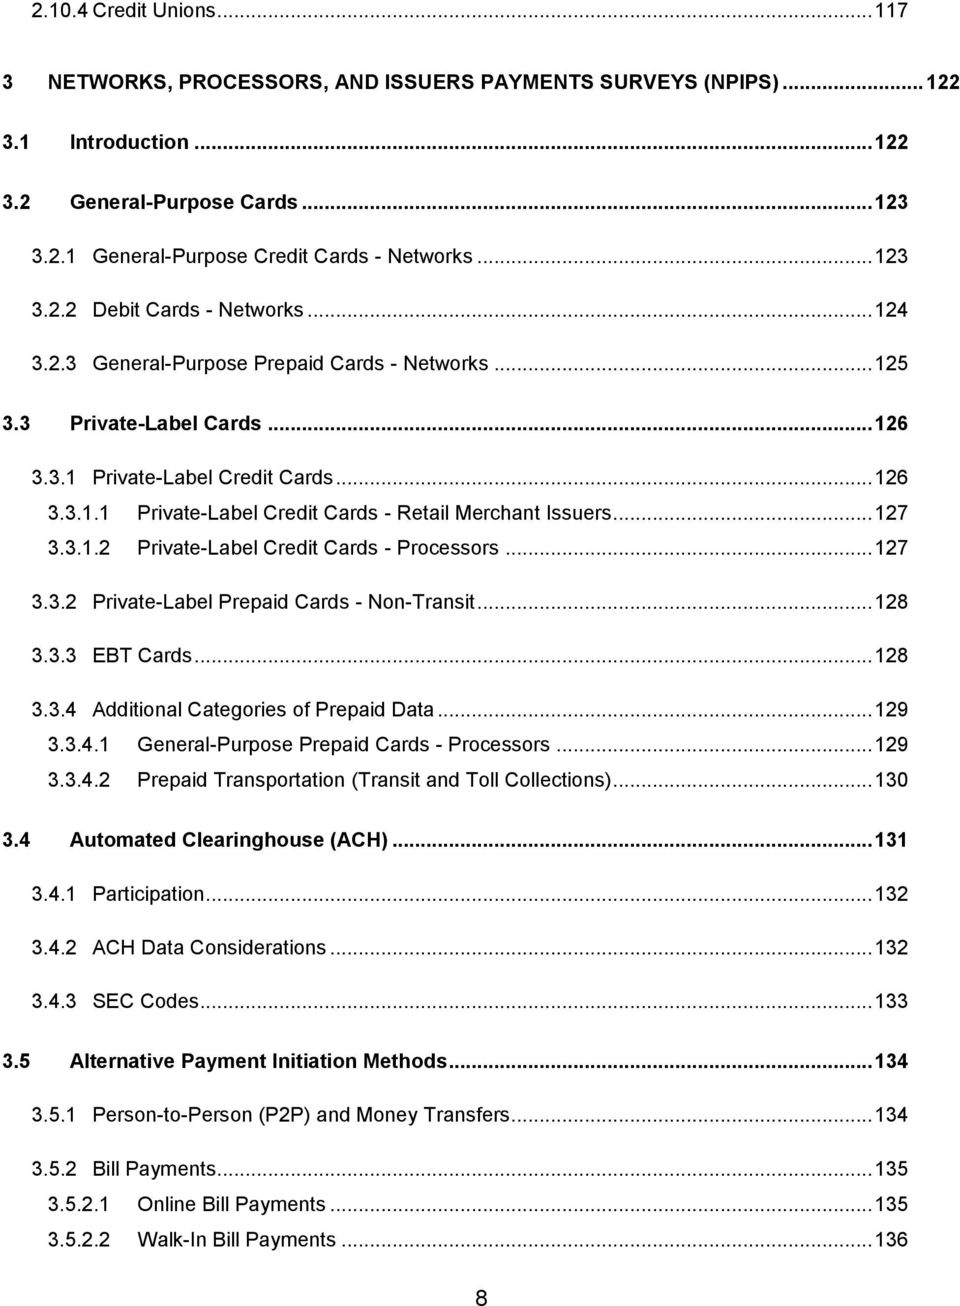 .. 127 3.3.1.2 Private-Label Credit Cards - Processors... 127 3.3.2 Private-Label Prepaid Cards - Non-Transit... 128 3.3.3 EBT Cards... 128 3.3.4 Additional Categories of Prepaid Data... 129 3.3.4.1 General-Purpose Prepaid Cards - Processors.